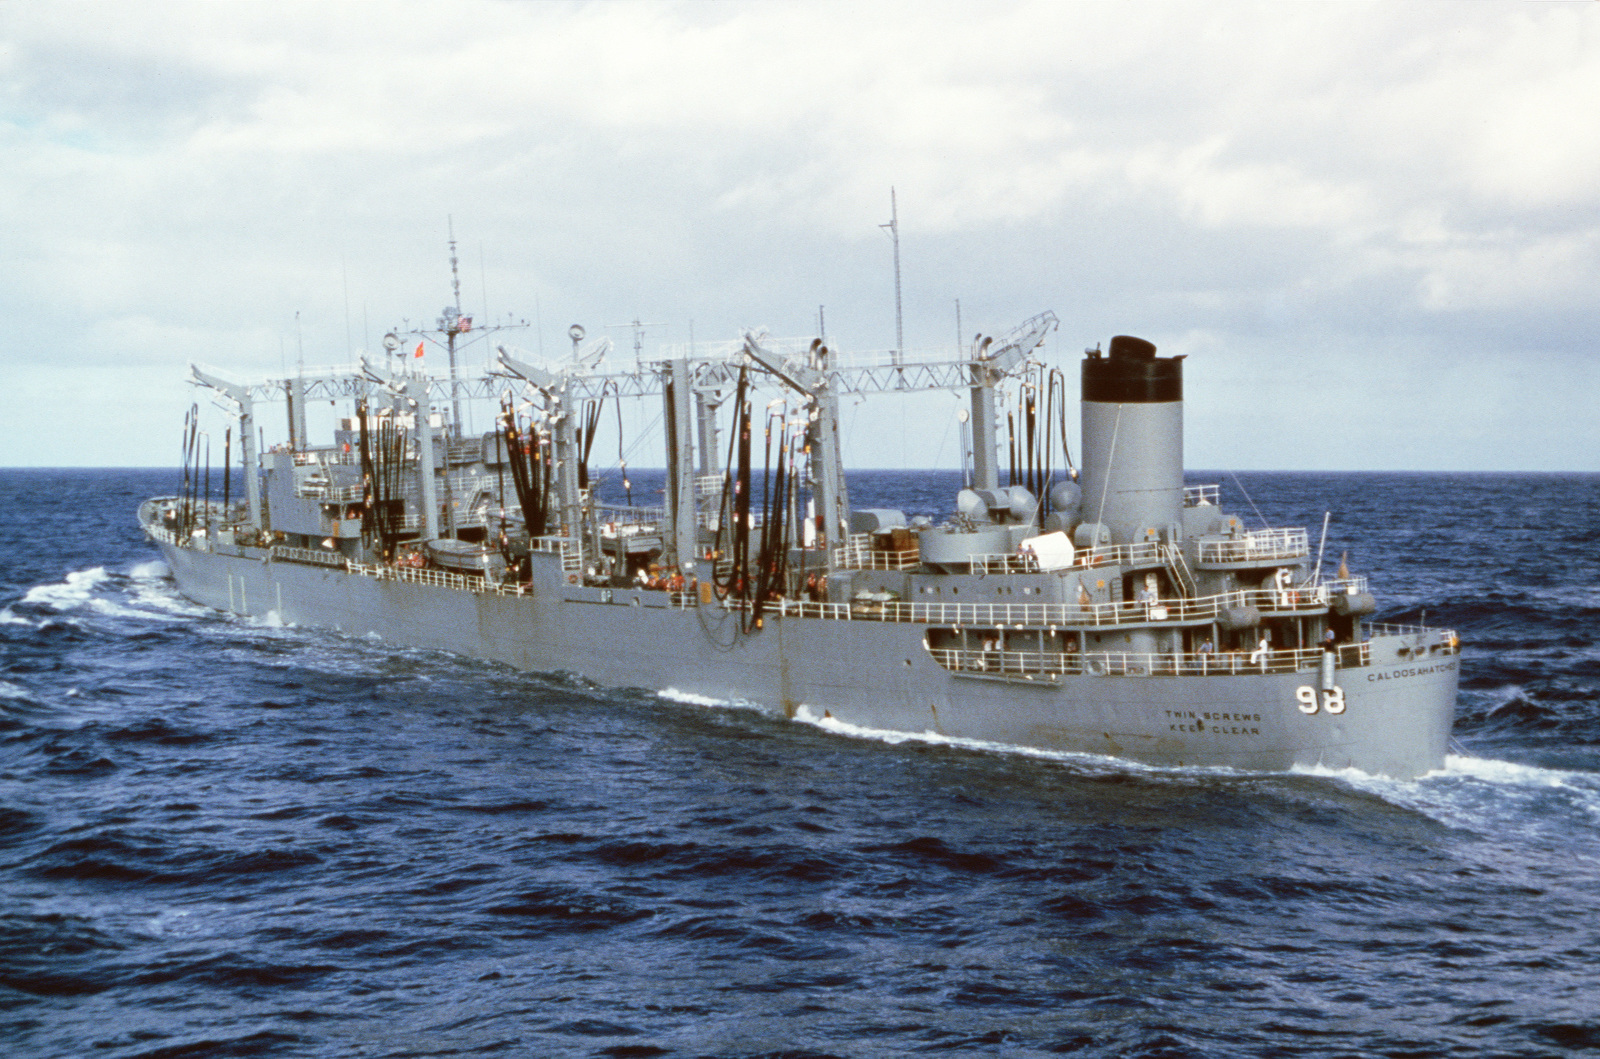 A port quarter view of the oiler USS CALOOSAHATCHEE (AO 98